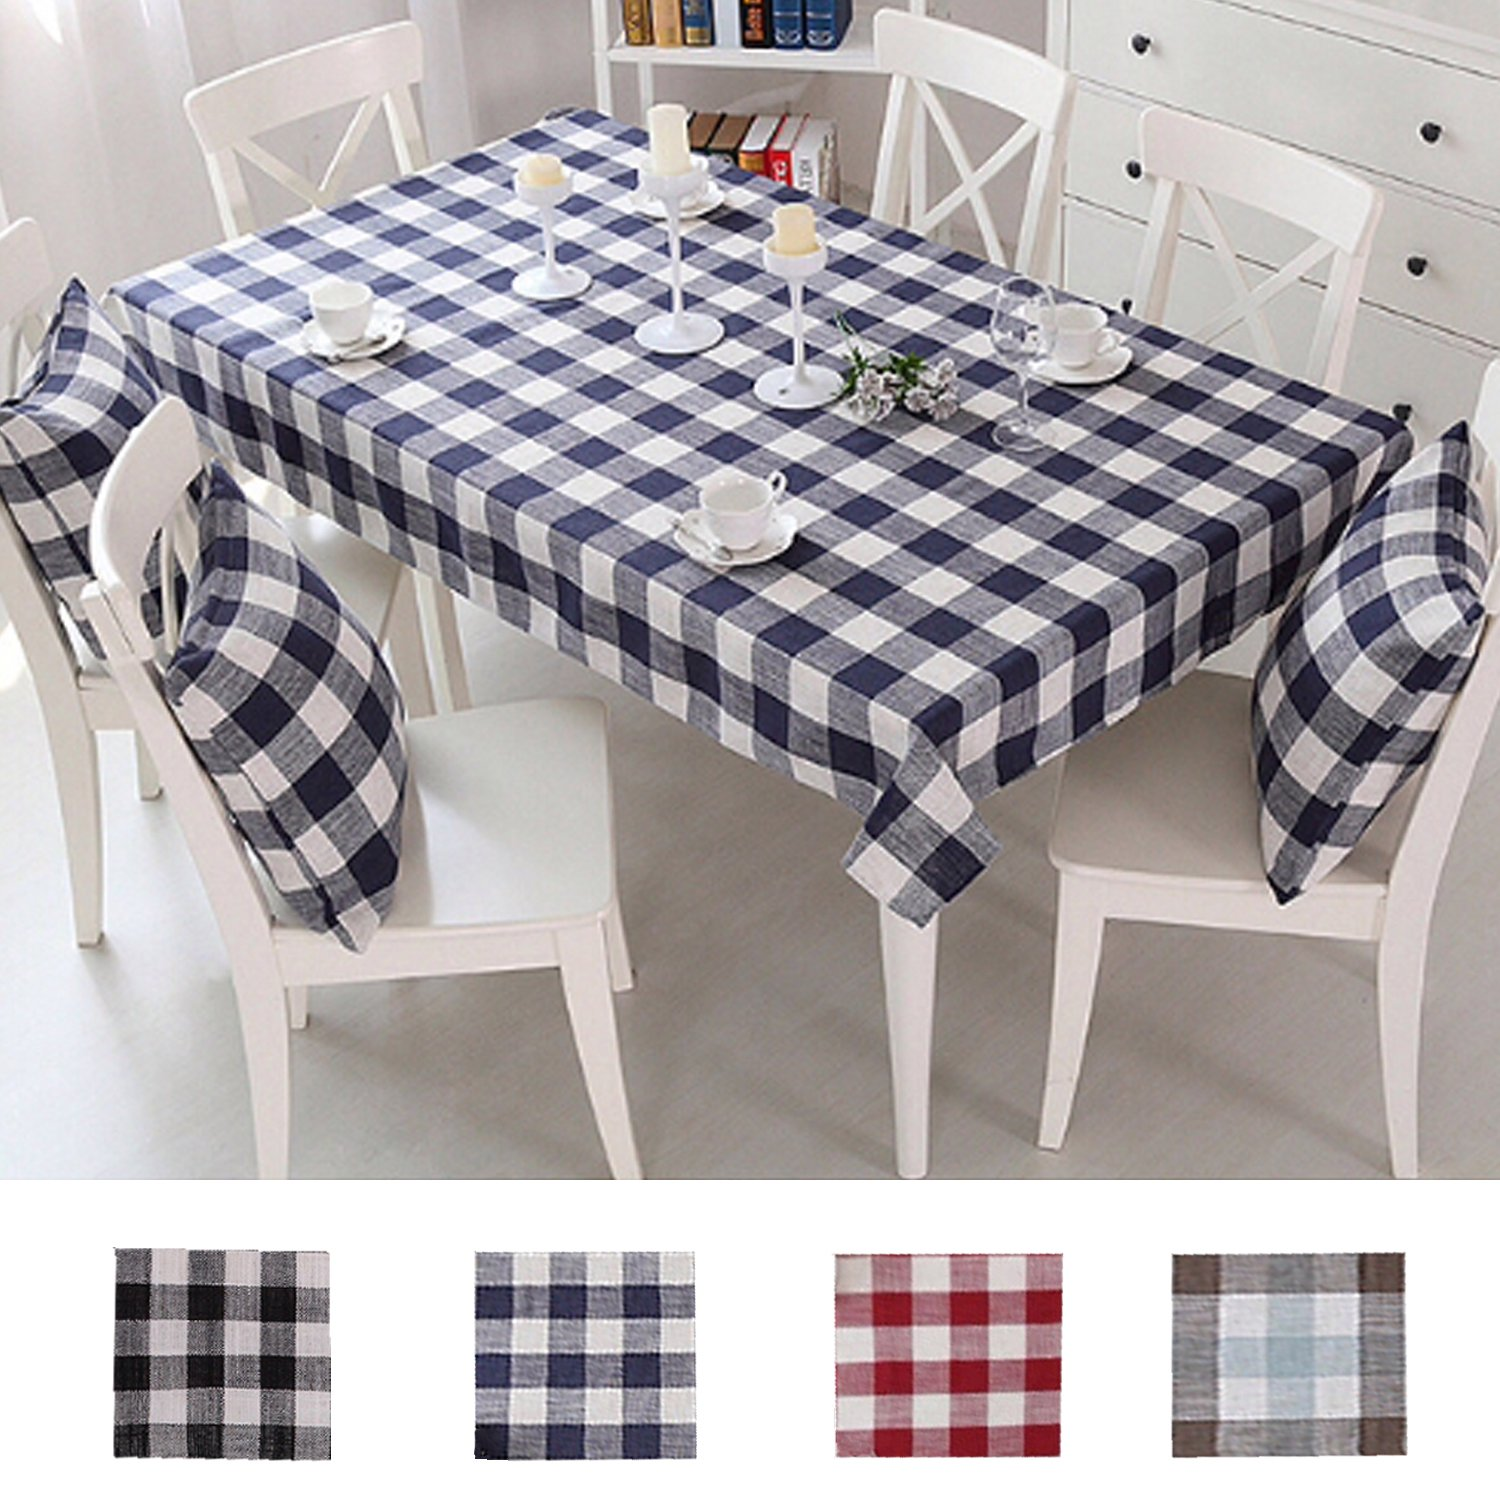 Queenie - 1 Pc Country Style Checkers Plaids Cotton Linen Table Cloth Available in 4 Colors and 5 Sizes (Navy Blue, 55 x 79 inch (140 x 200 cm))